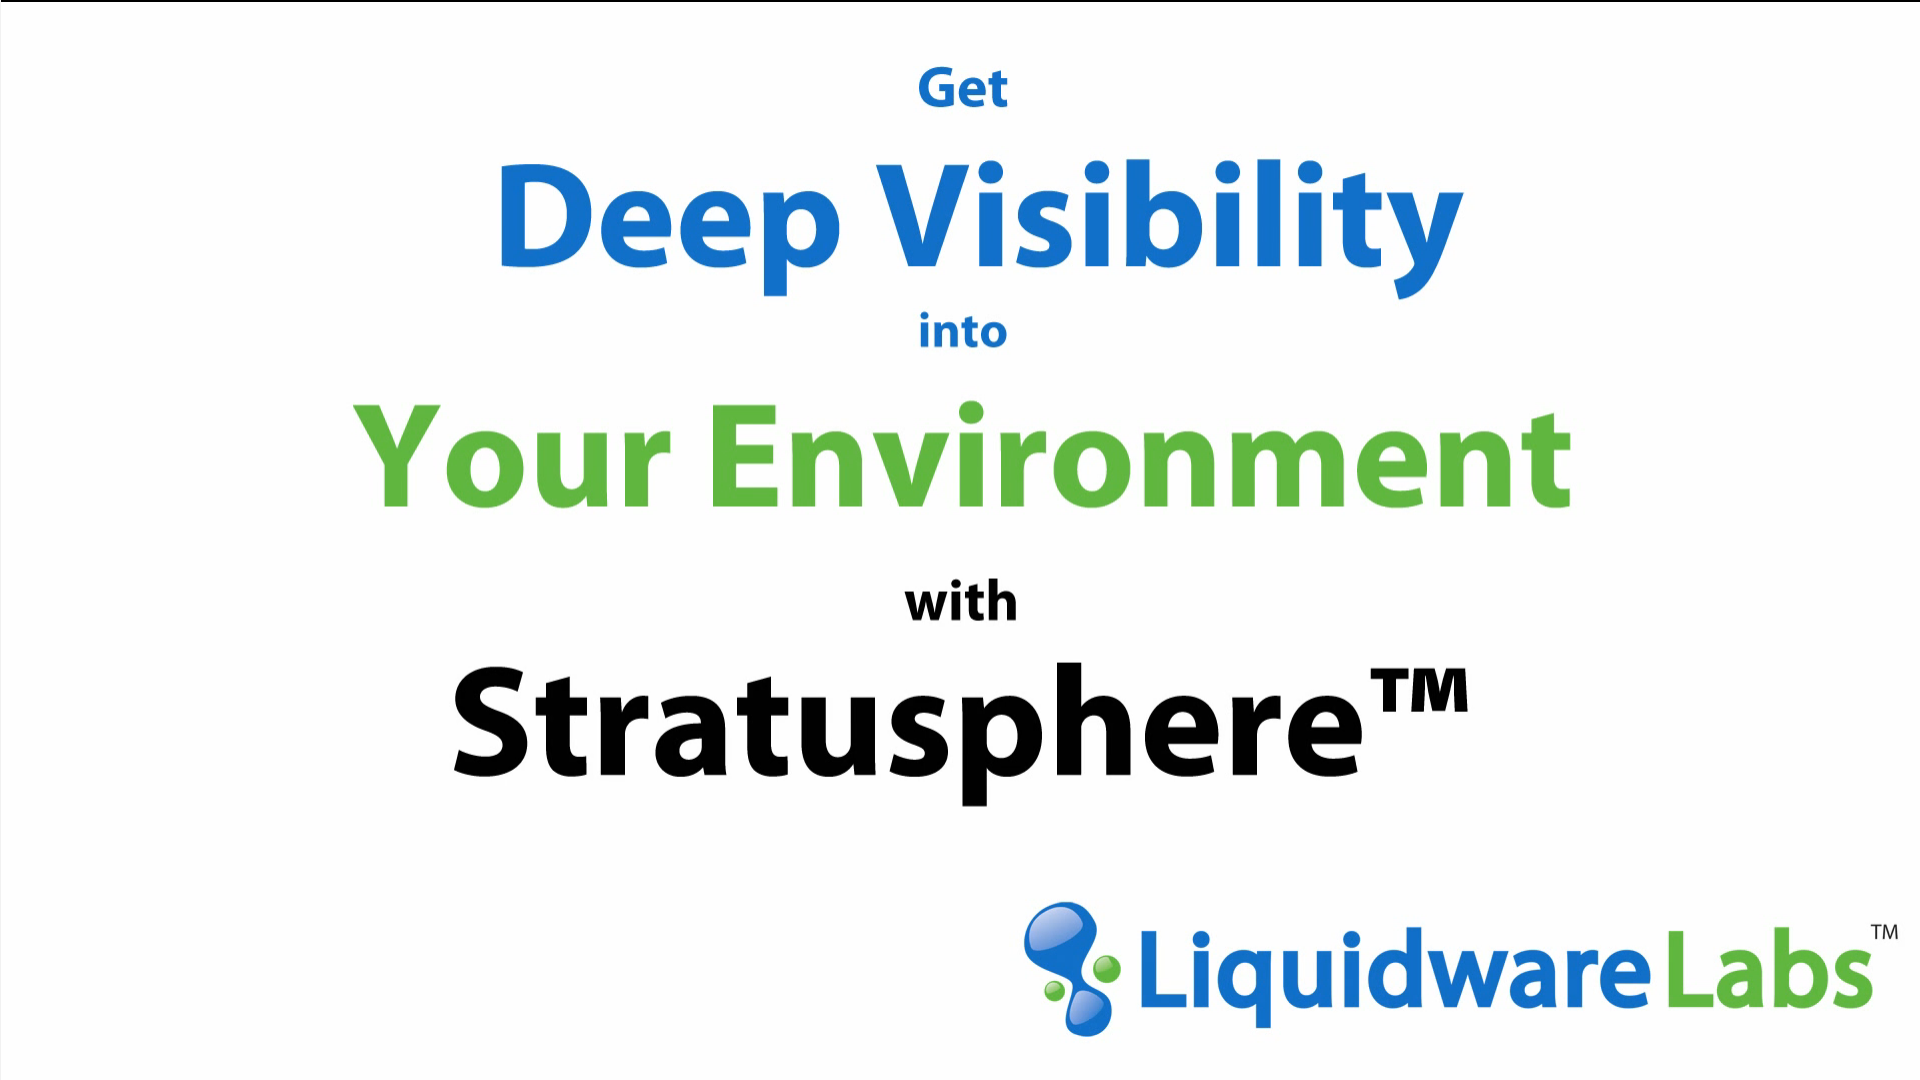 Get Deep Visibility Into Your Environment with Stratusphere